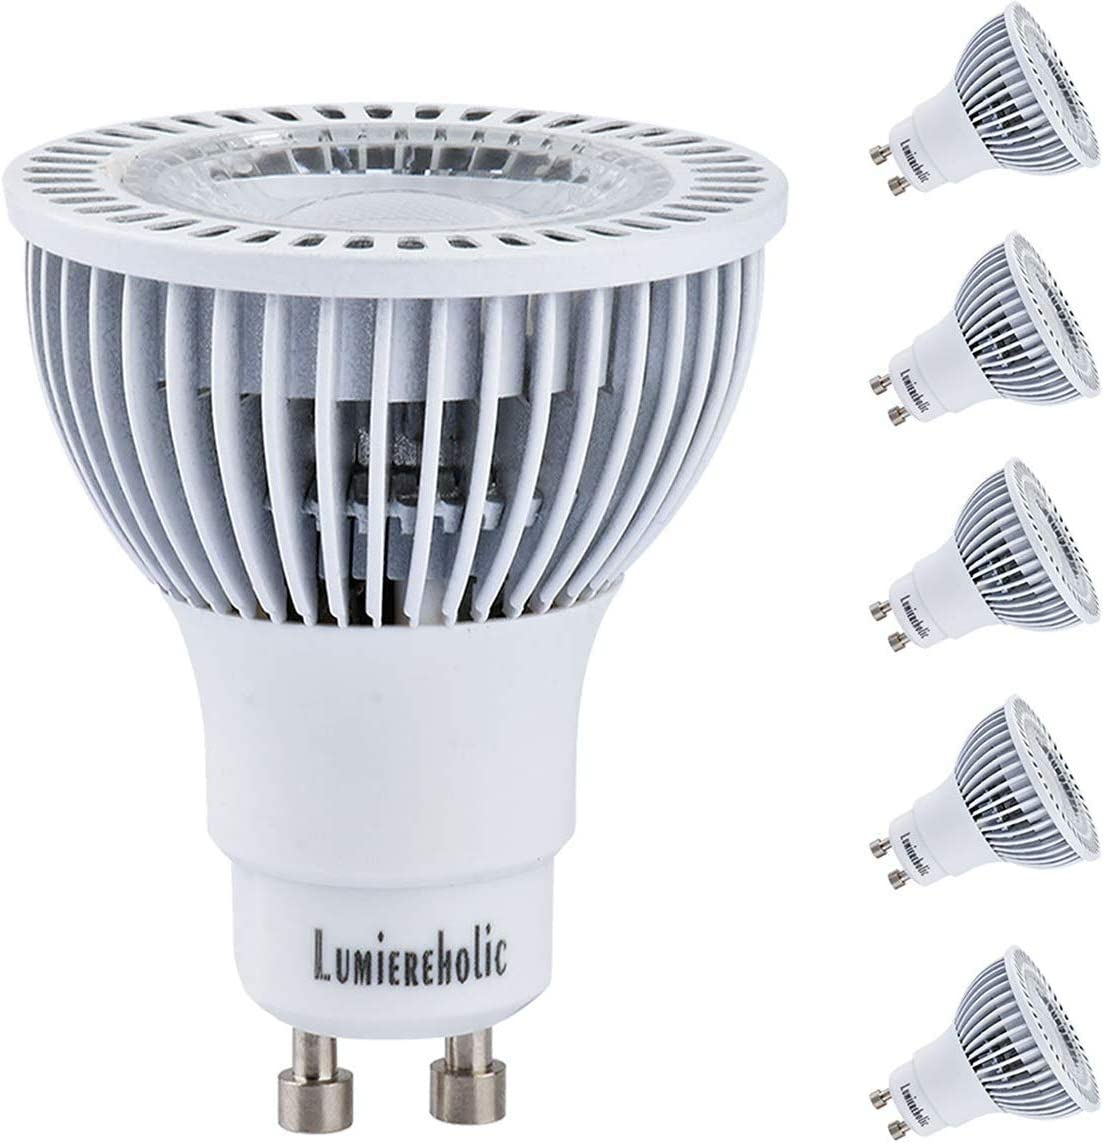 Lumiereholic LED GU10 LED Bulbs 90W Halogen Replacement 10w 3200K Warm White Spotlight,Led Recessed Ceiling Light,Indoor Lighting 120v UL Listed 5 Pack